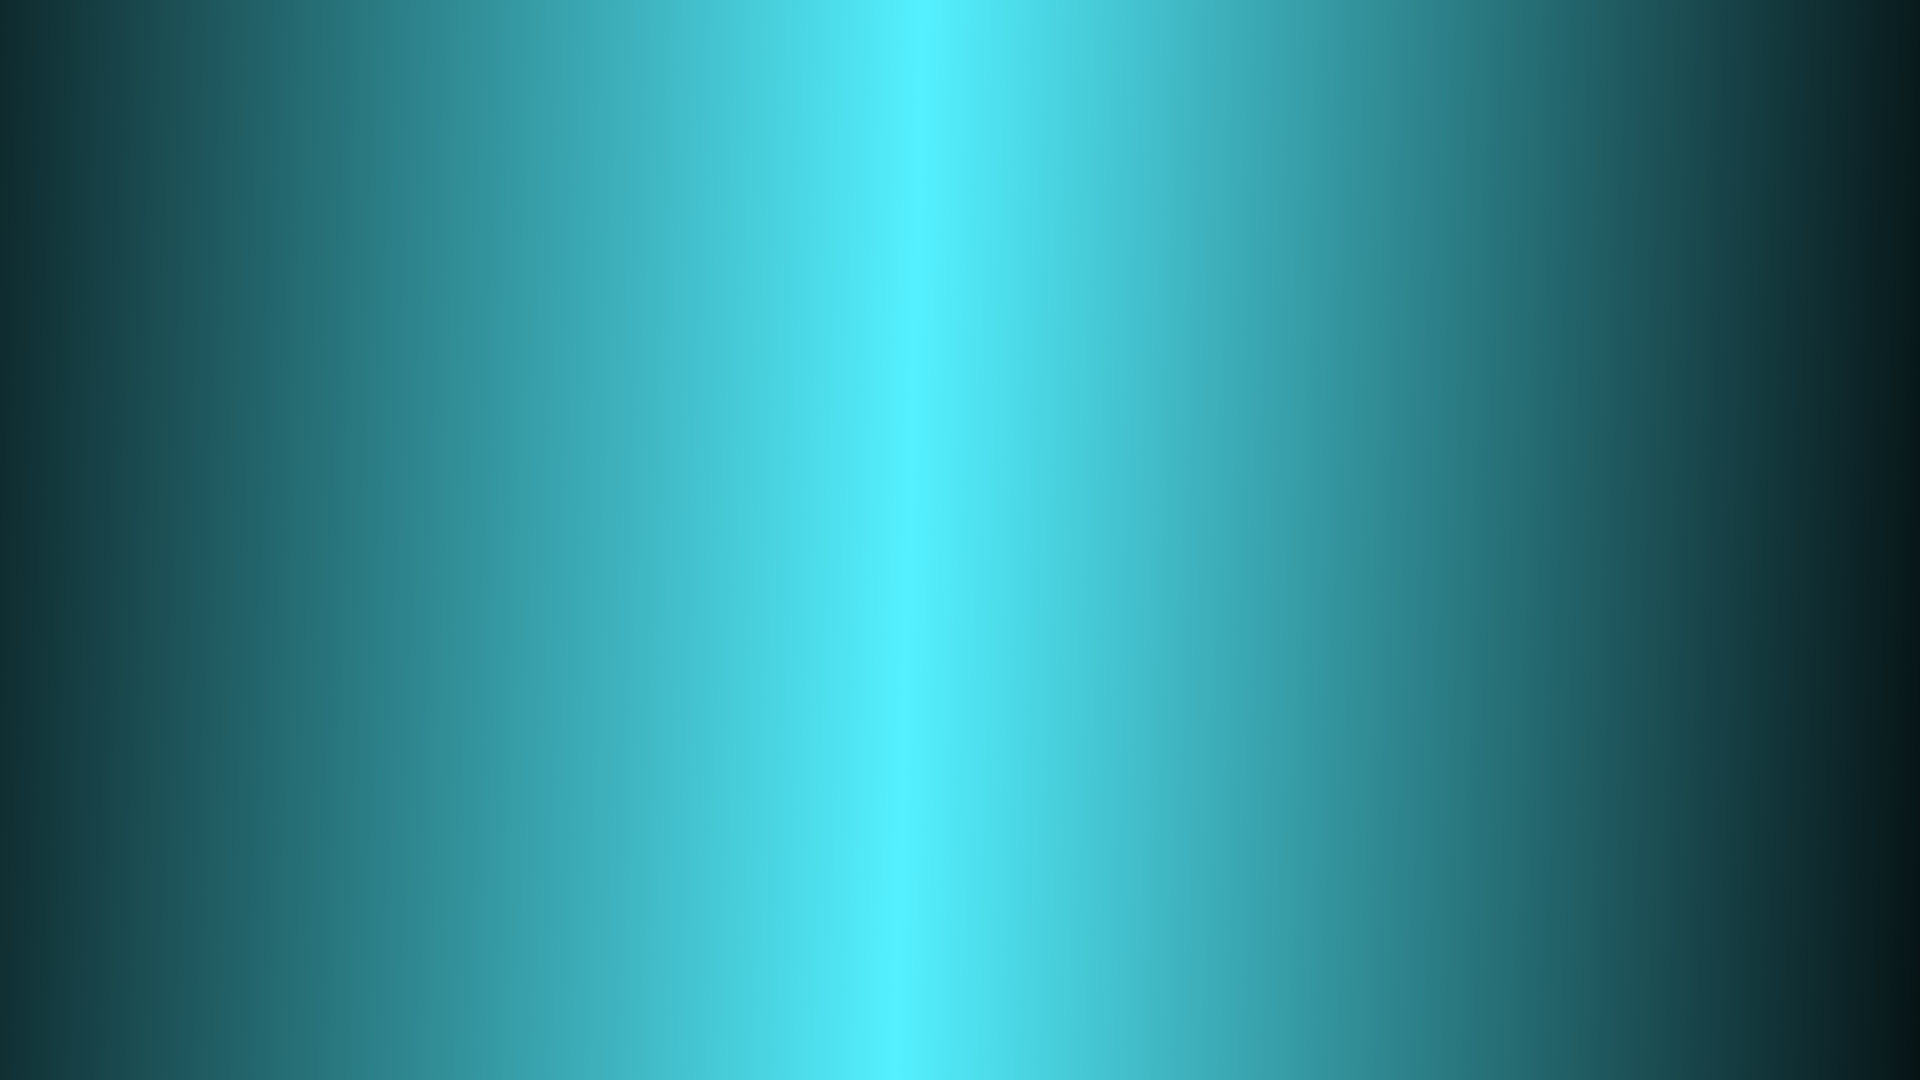 Minimalist Light Blue Background On Minimalist Images – Tractor Service And  Repair Manuals